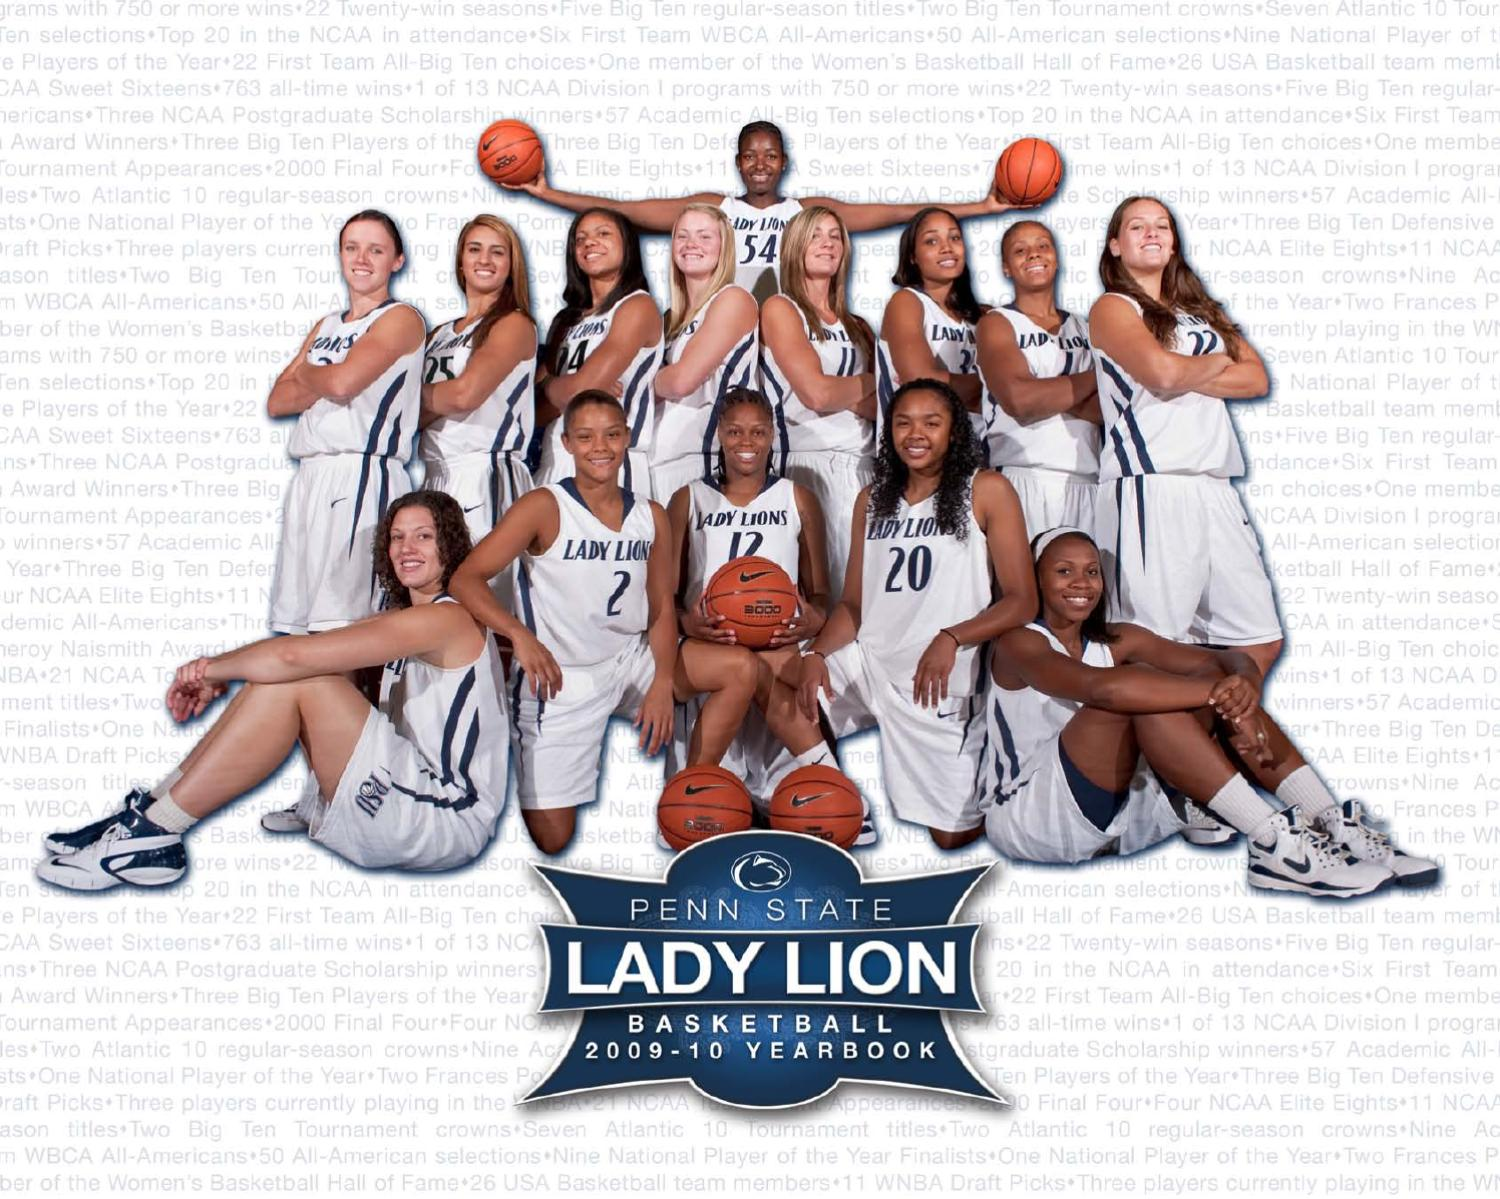 60591df2a492 2009-10 Penn State Lady Lion Basketball Yearbook by Penn State Athletics -  issuu